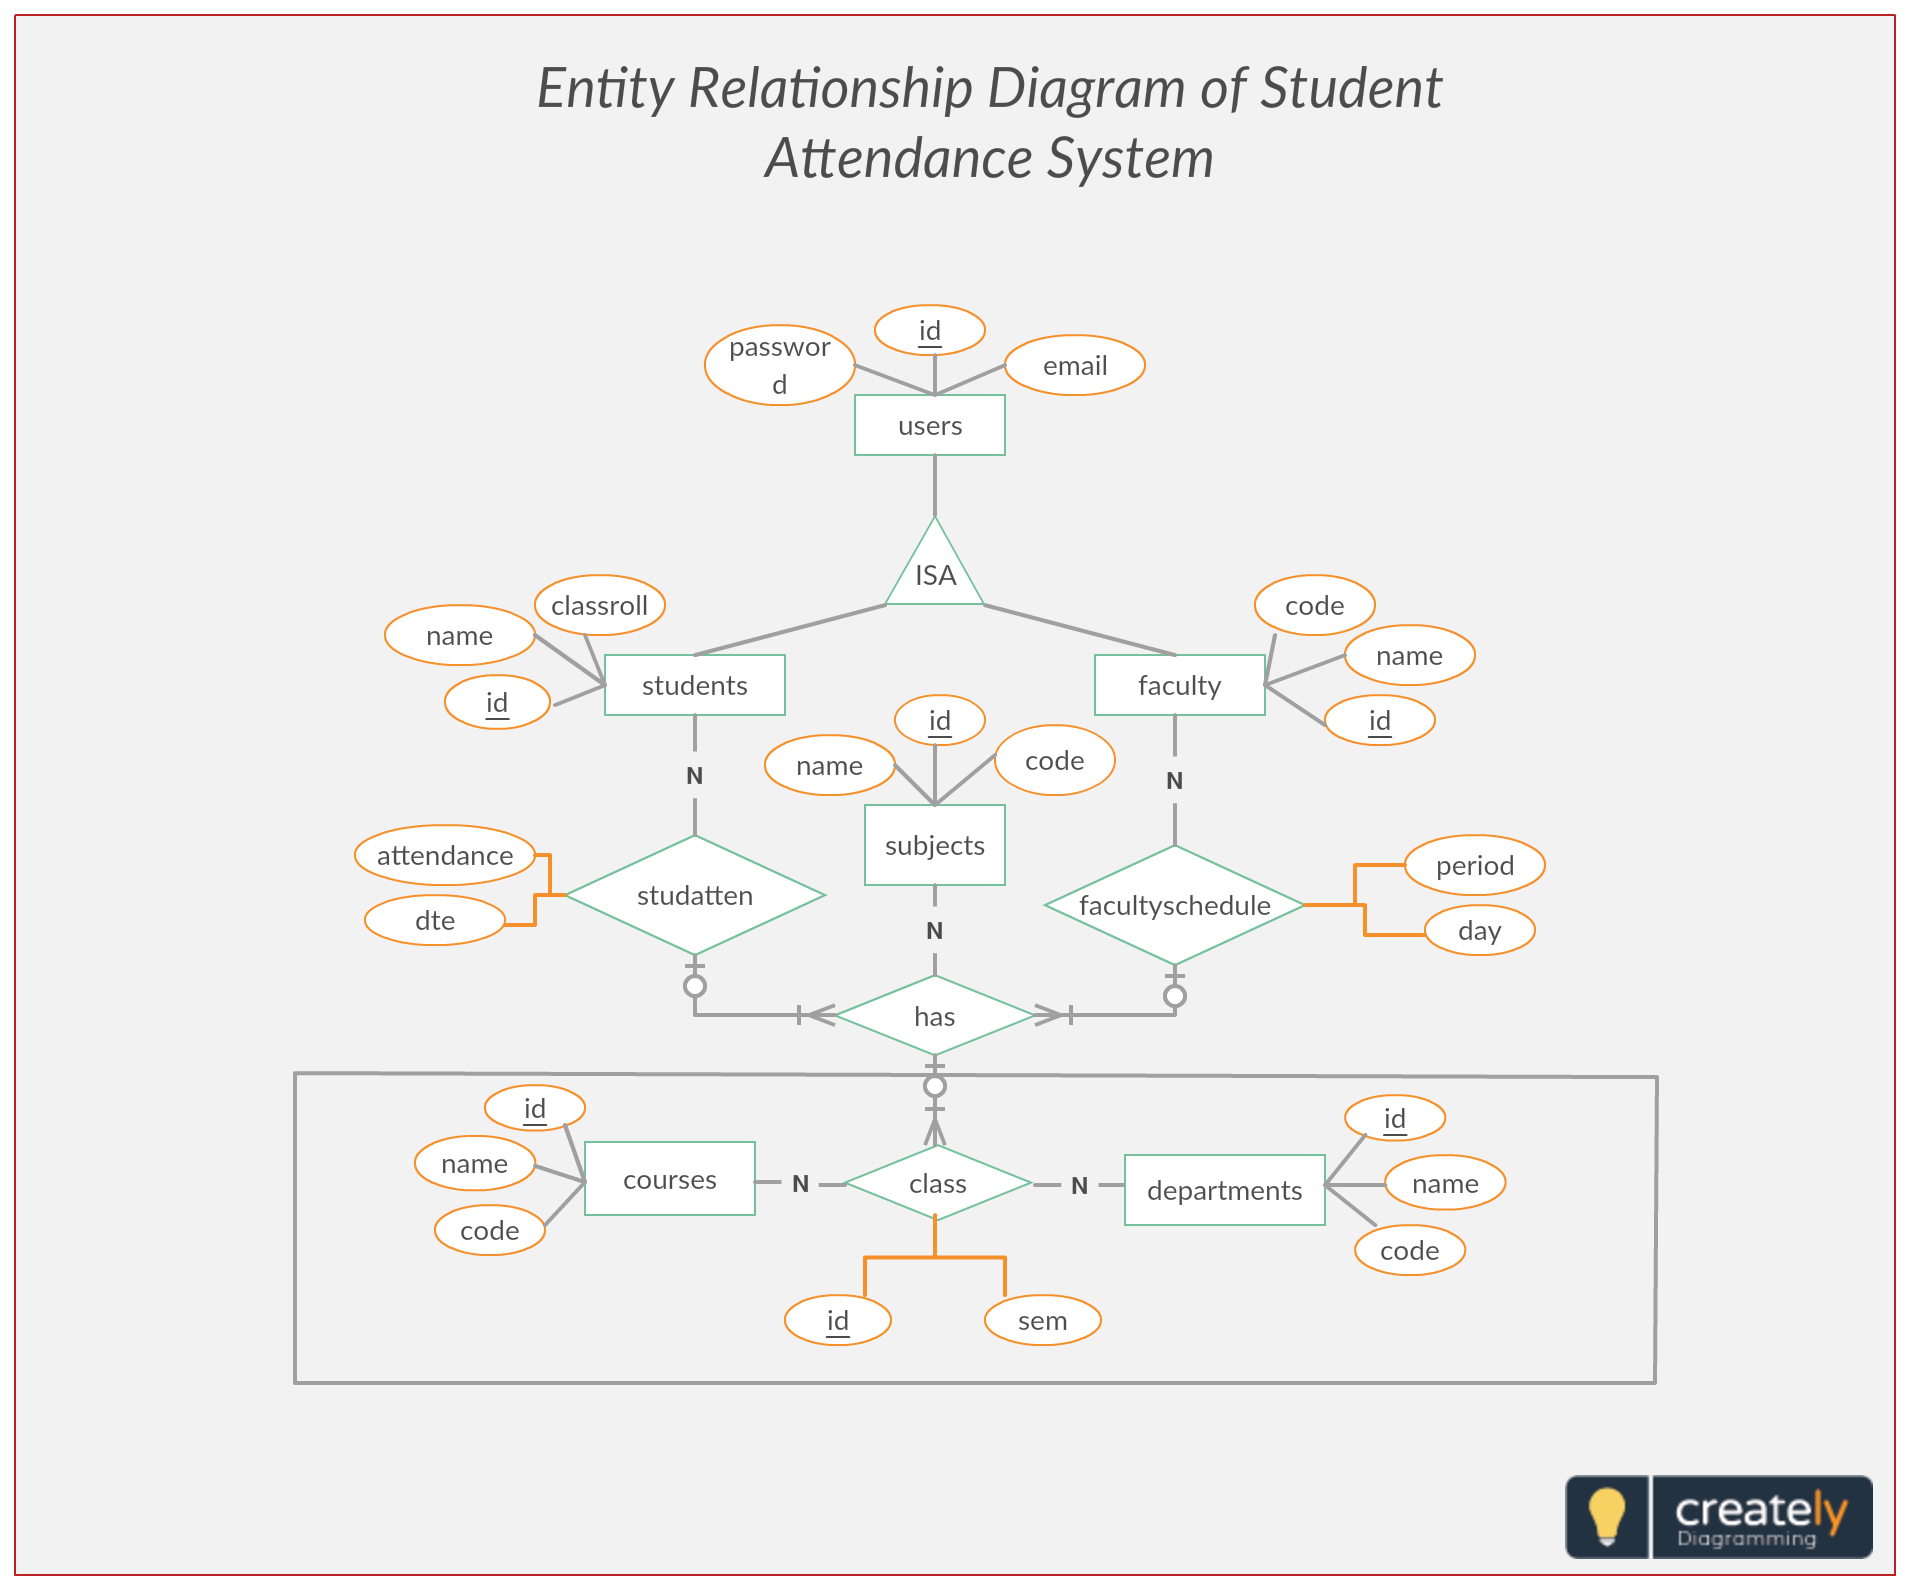 Er Diagram Student Attendance Management System Entity Relationship Diagram Represents The Relationsh Relationship Diagram Student Attendance Sequence Diagram